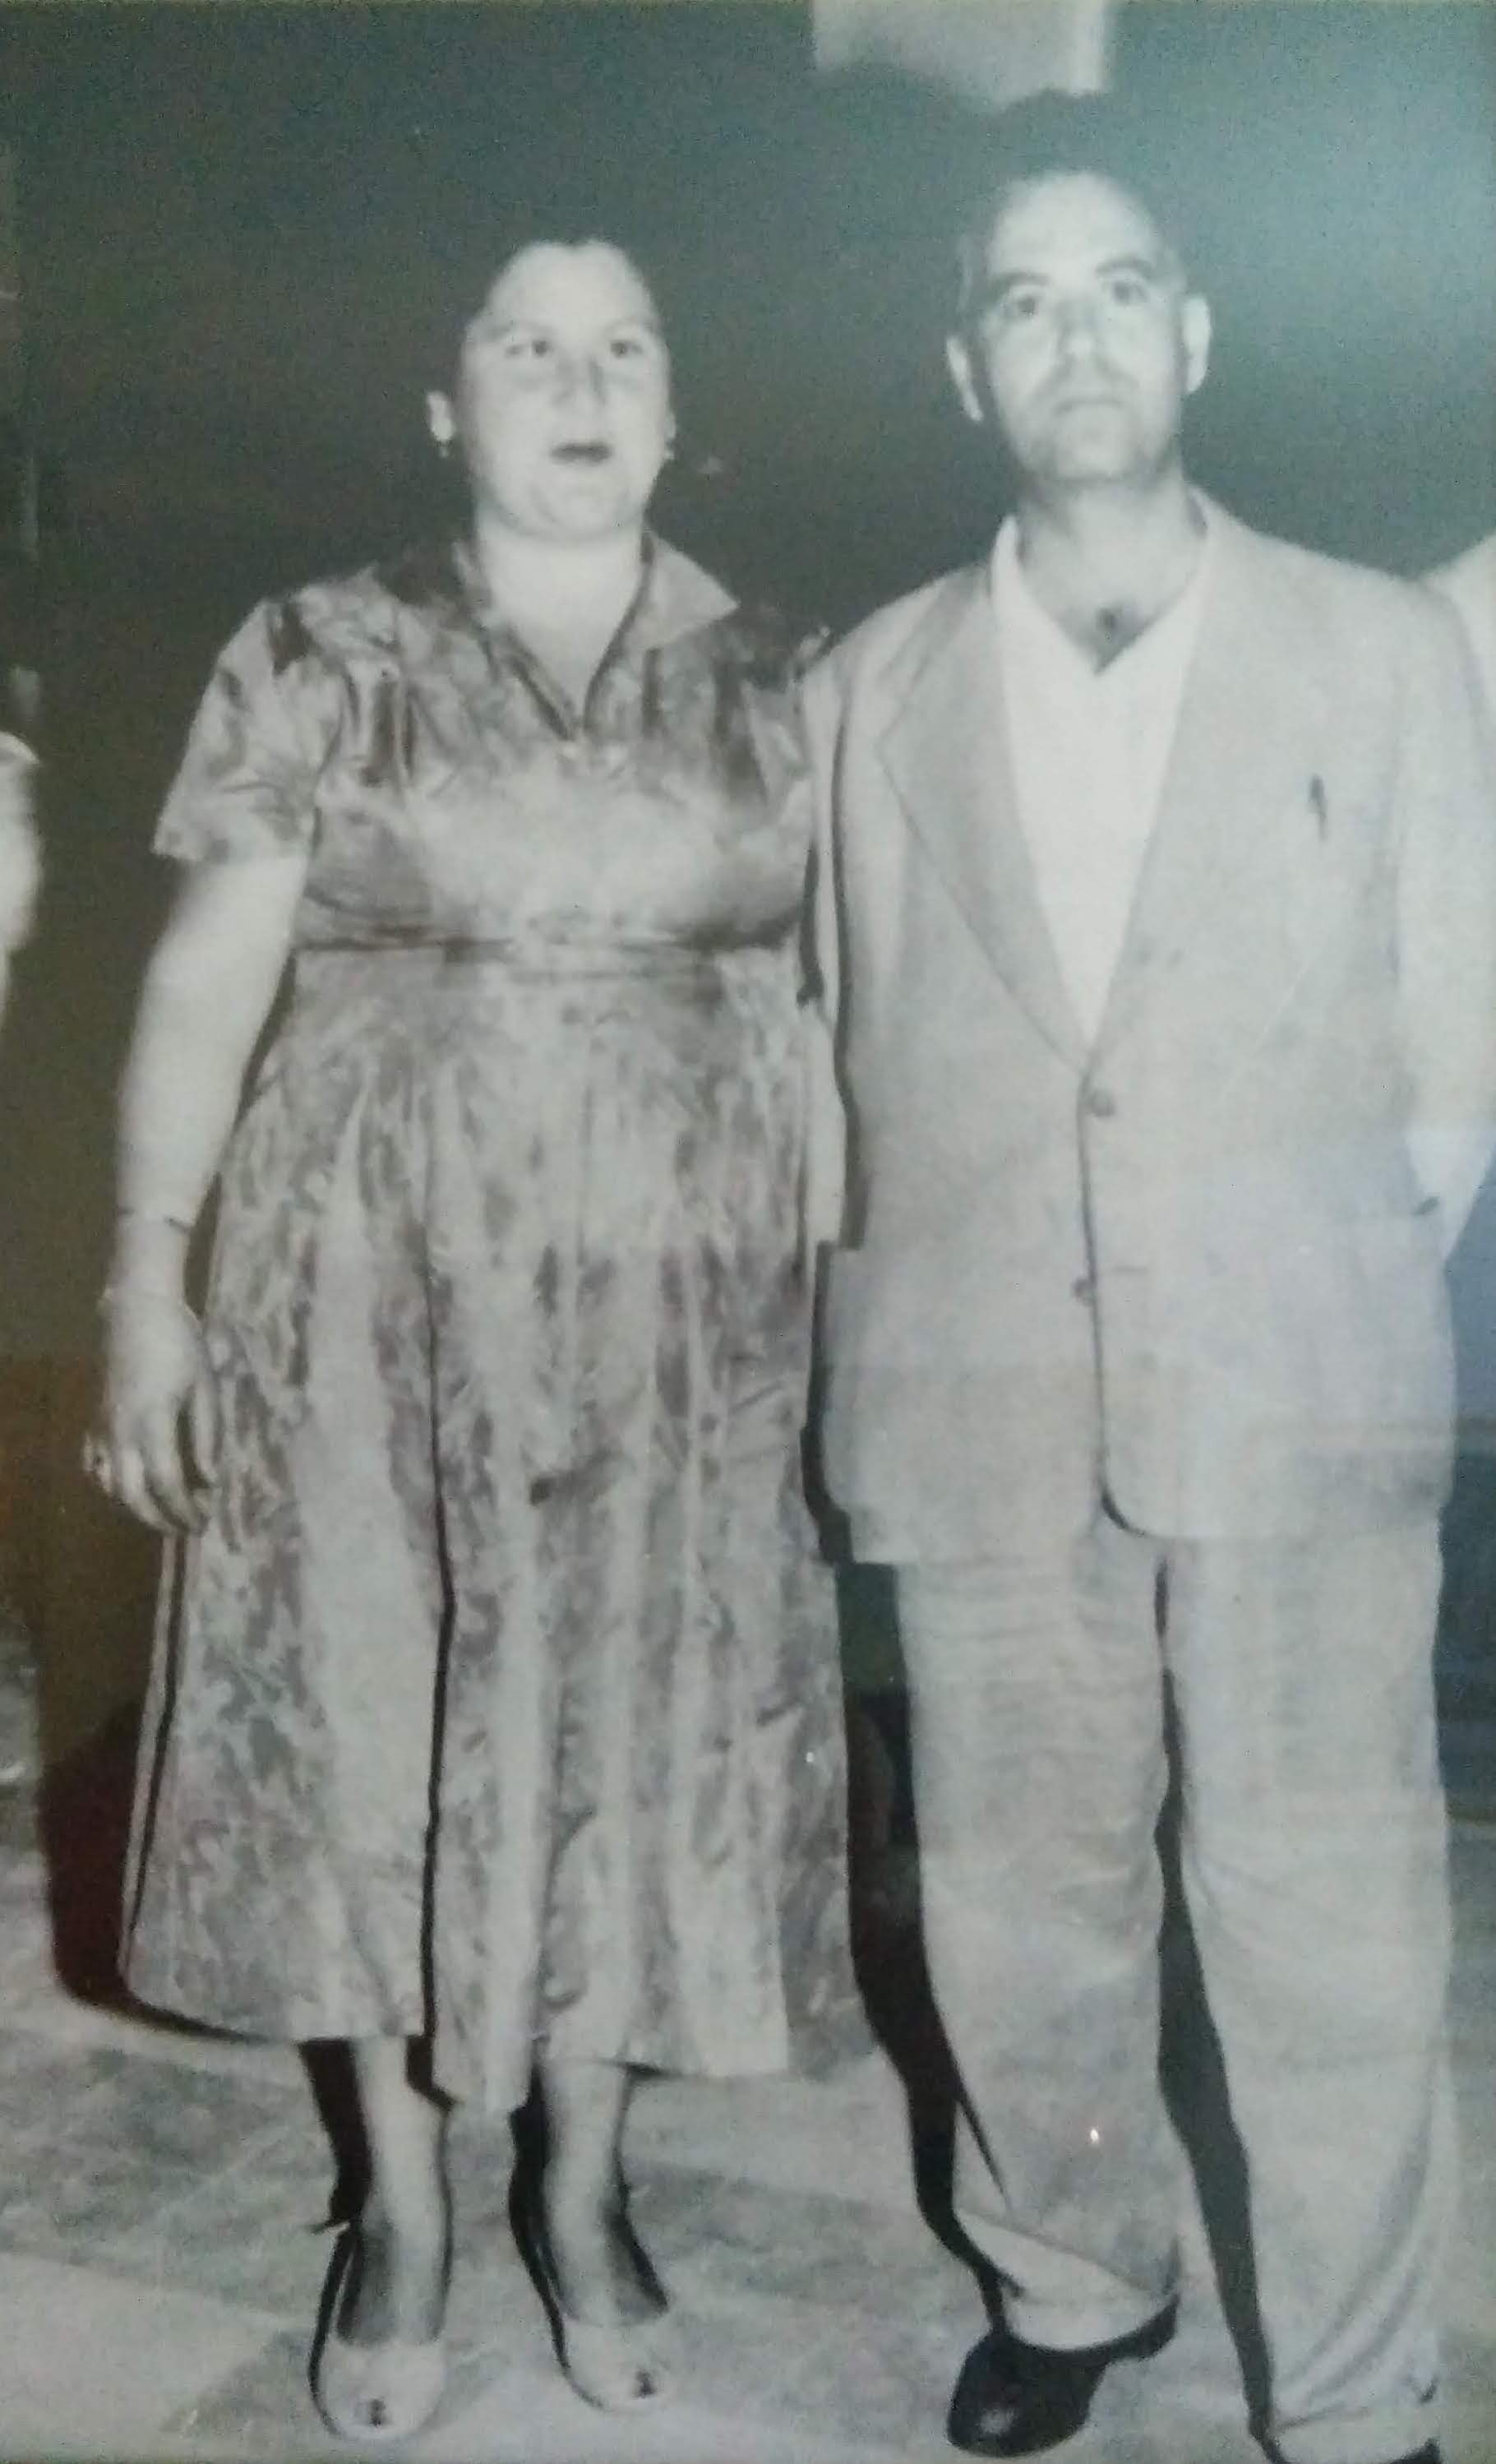 Nitza's parents, Maloo and Shimon, in Israel, 1950.